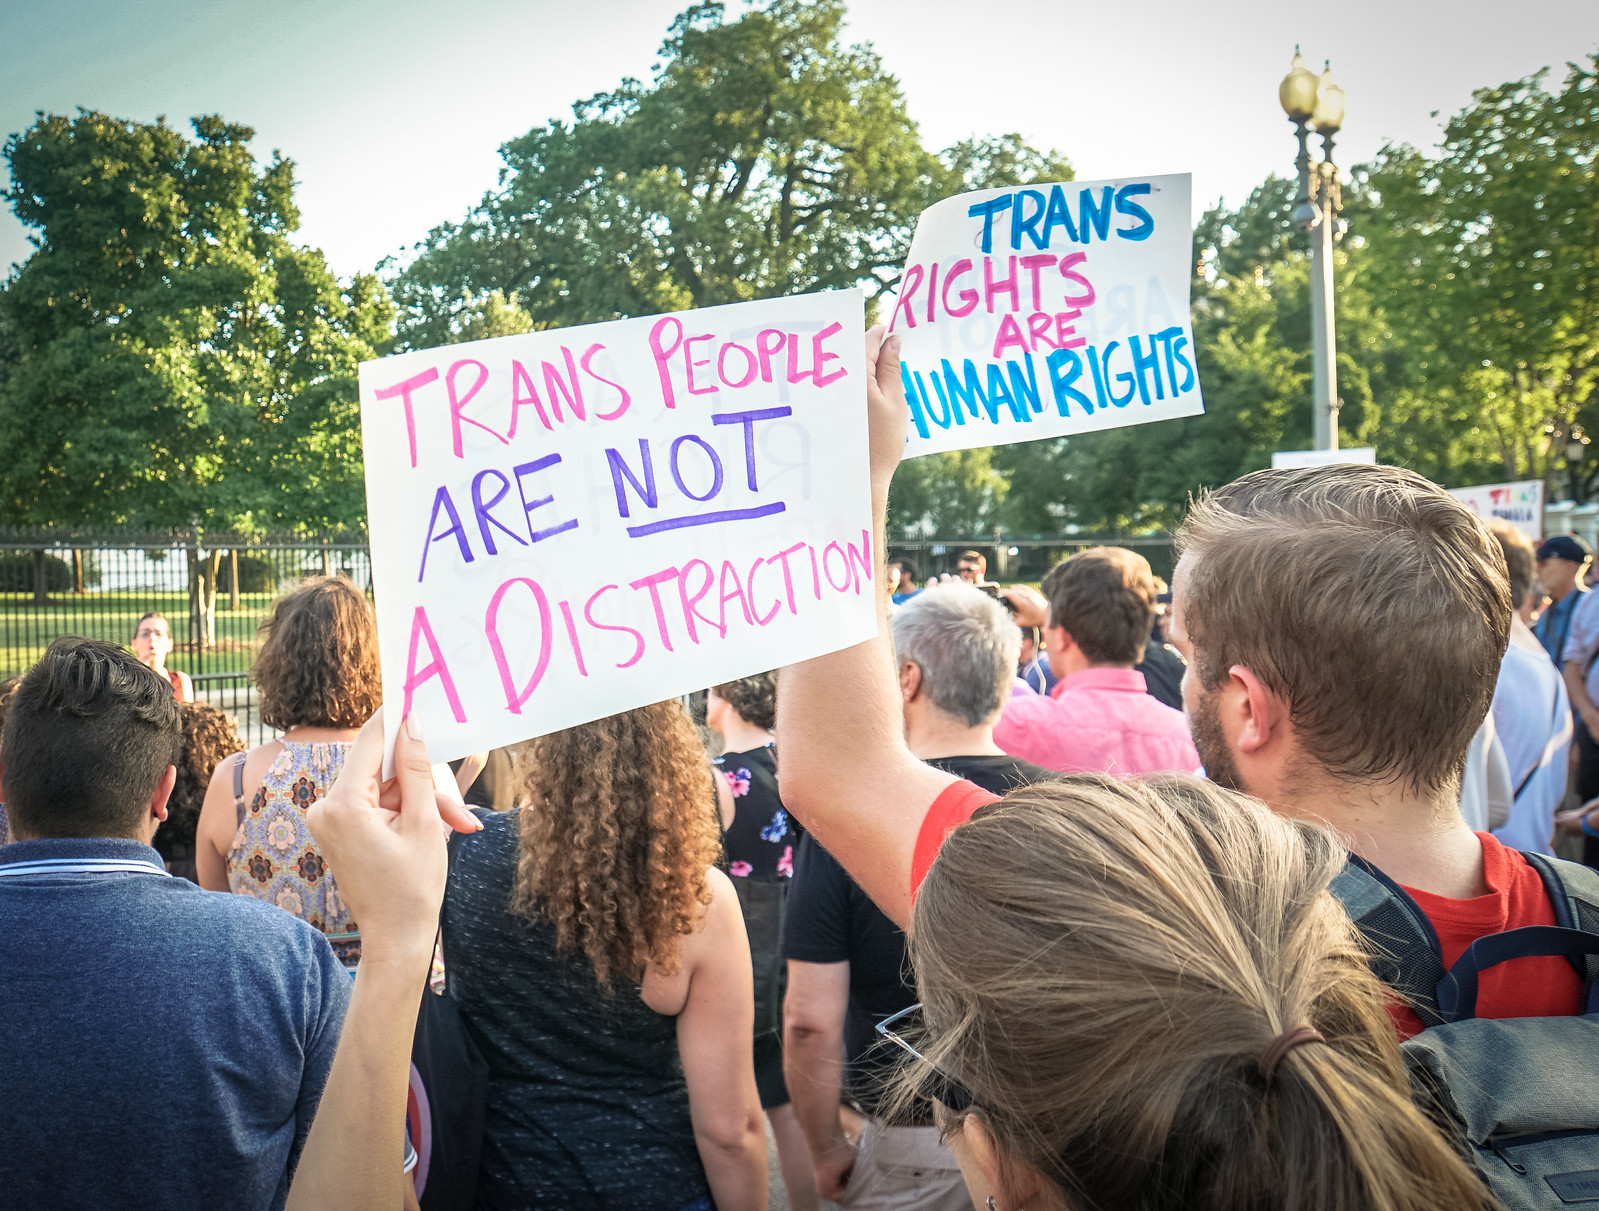 2017.07.26 Protest Trans Military Ban, White House, Washington DC USA 7644